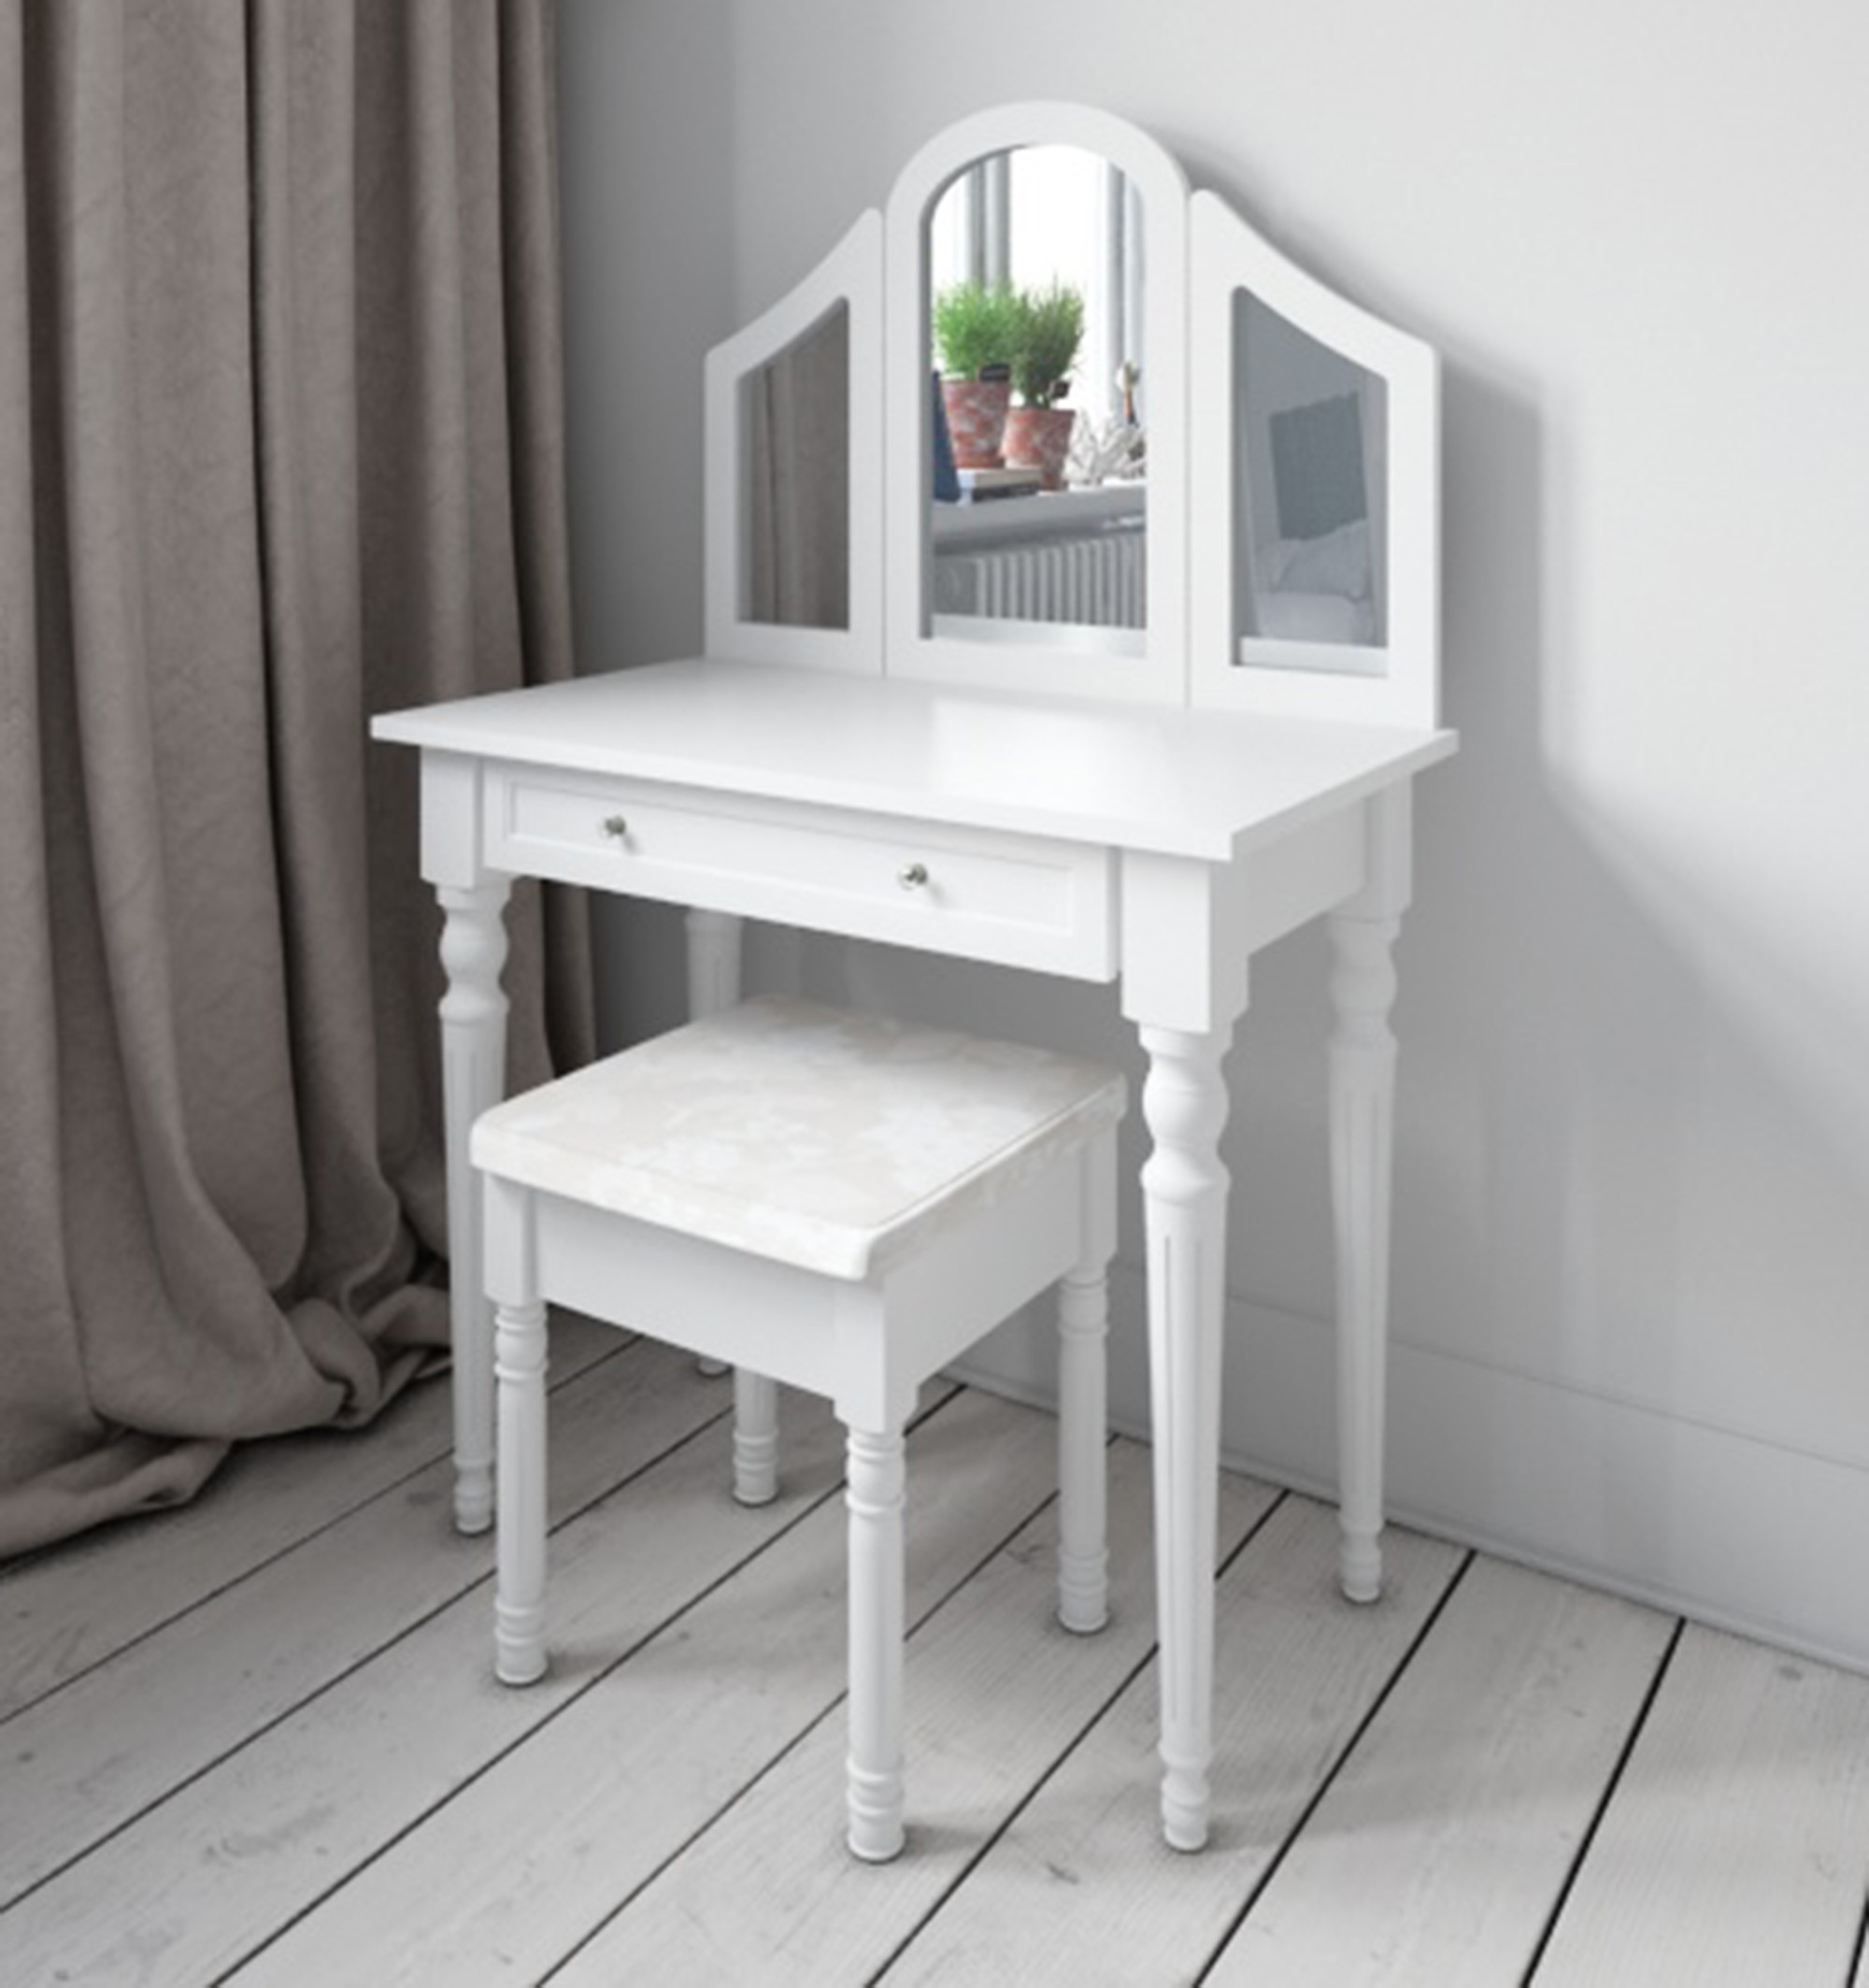 3 mirrored dressing table from abreo abreo home furniture shabby chic white geotapseo Images